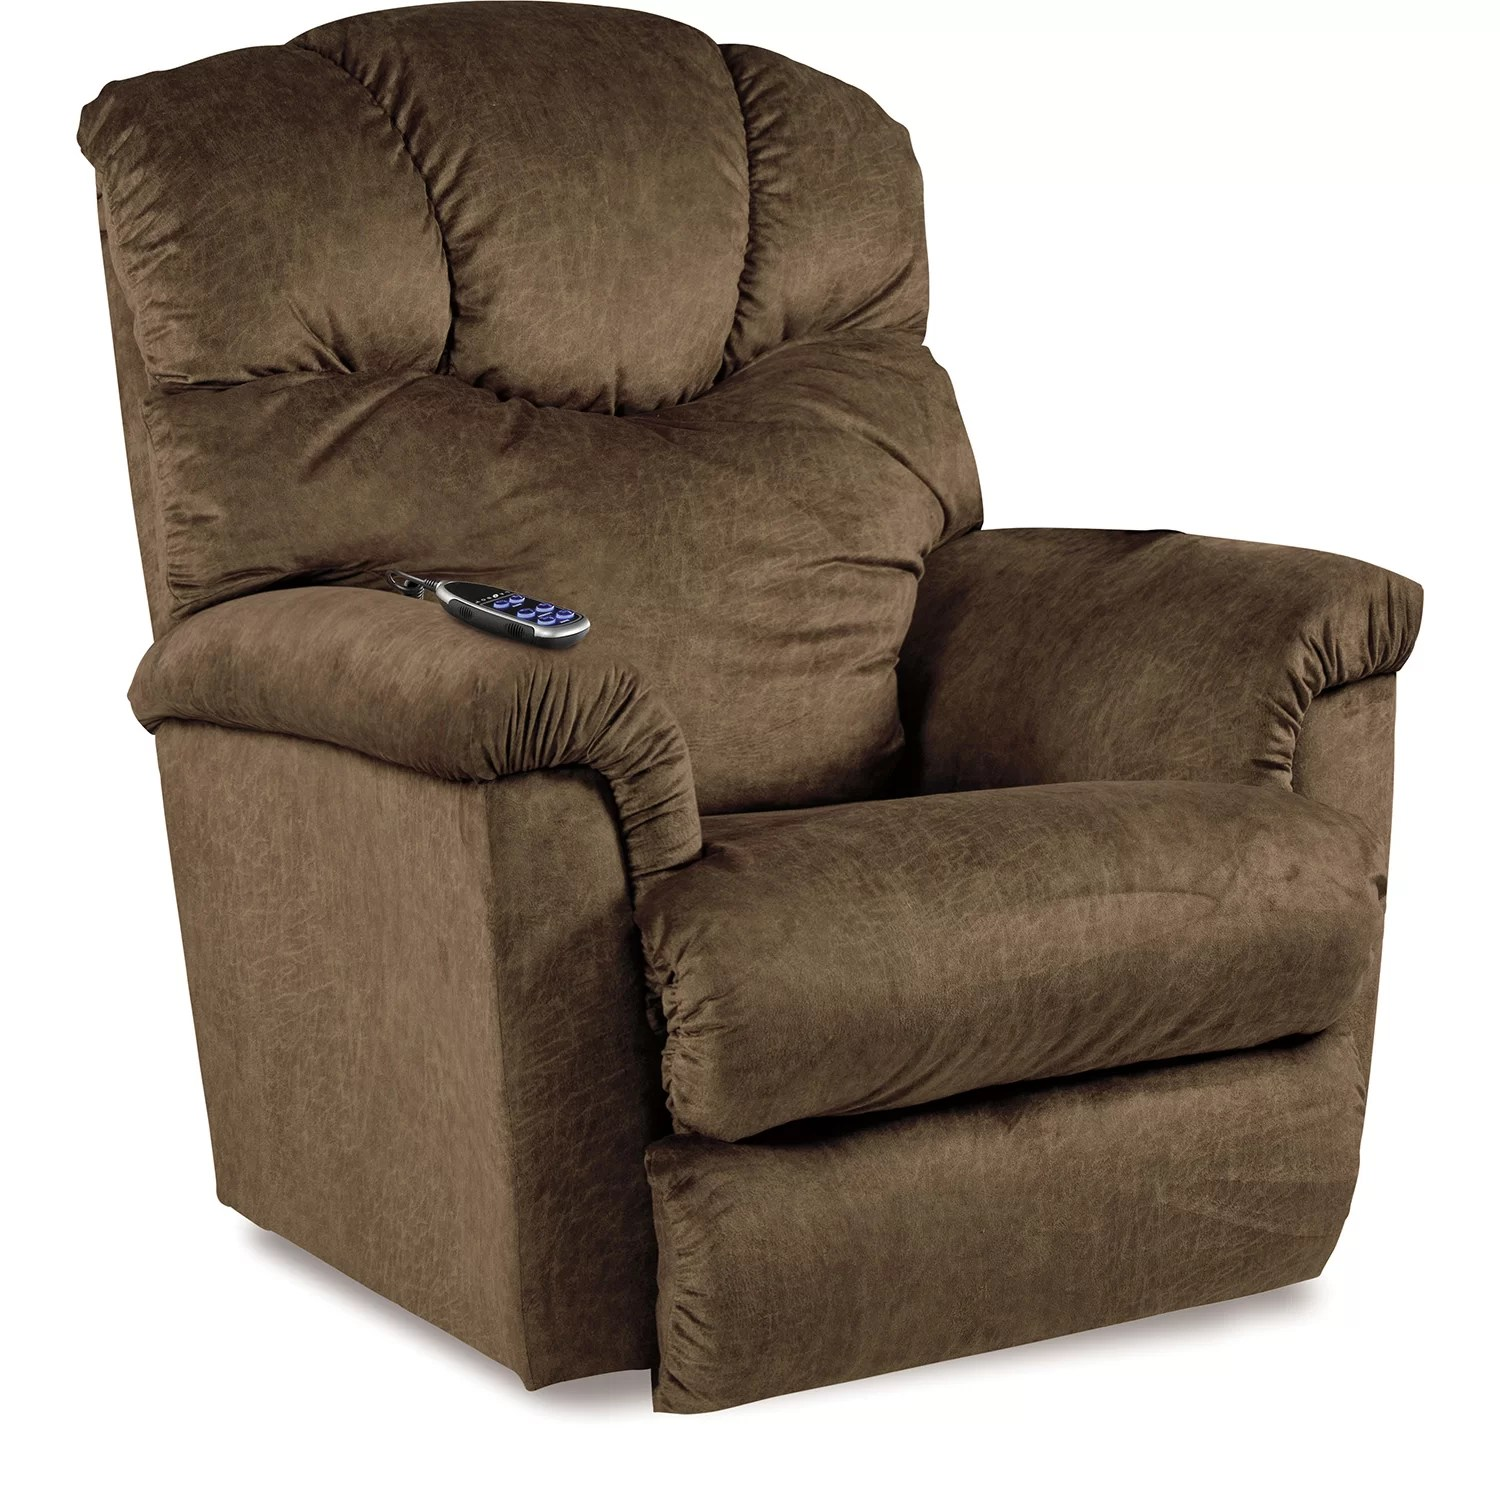 power recliner chairs reviews walmart chair bed la z boy lancer and wayfair